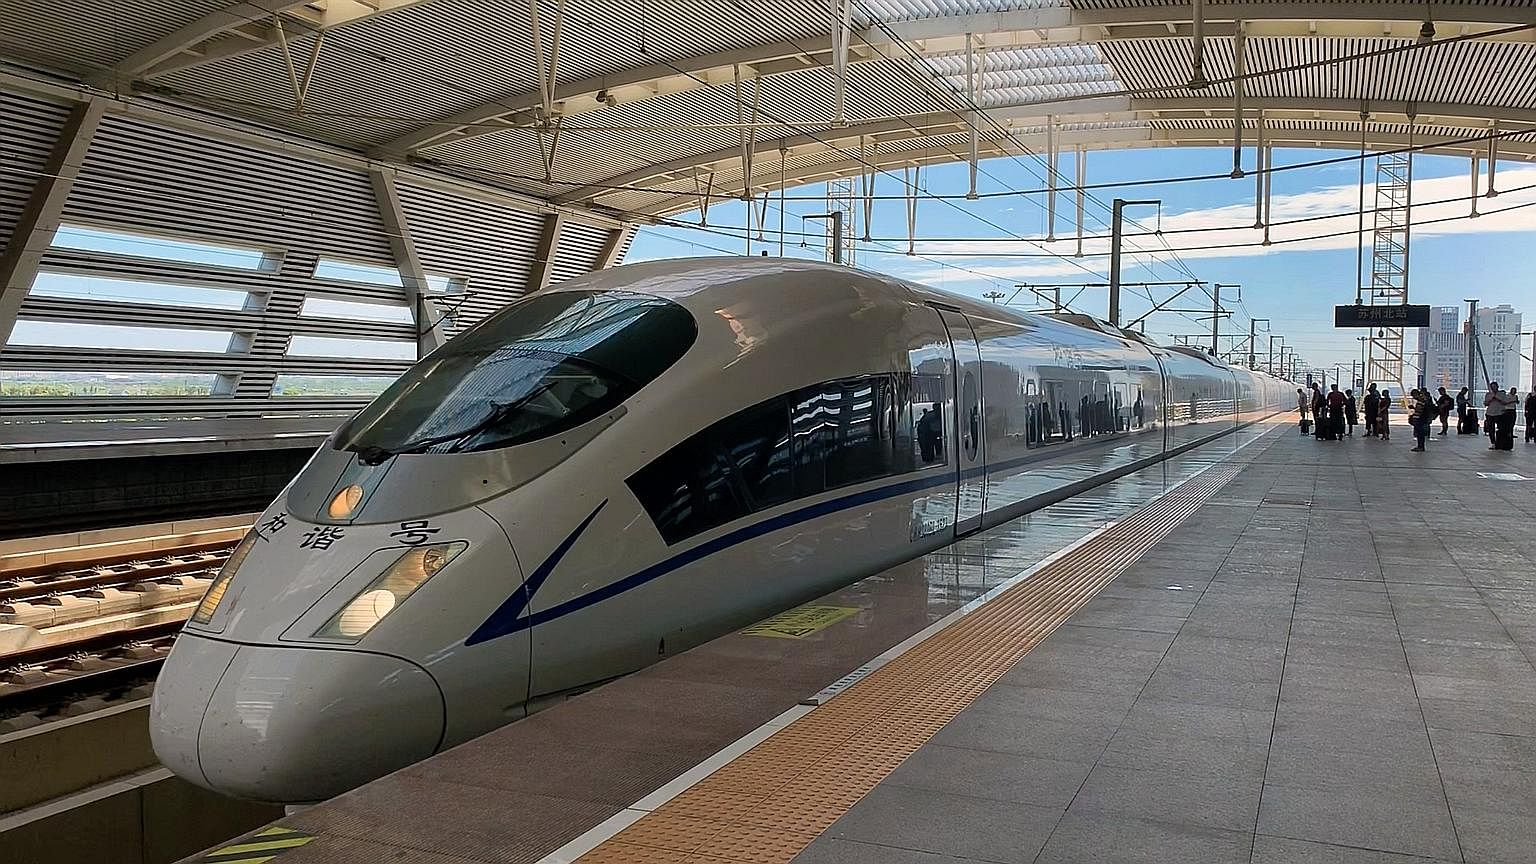 China's high-speed-rail network, the world's longest, tops 30,000km this year, offering seemingly endless destinations to visit.